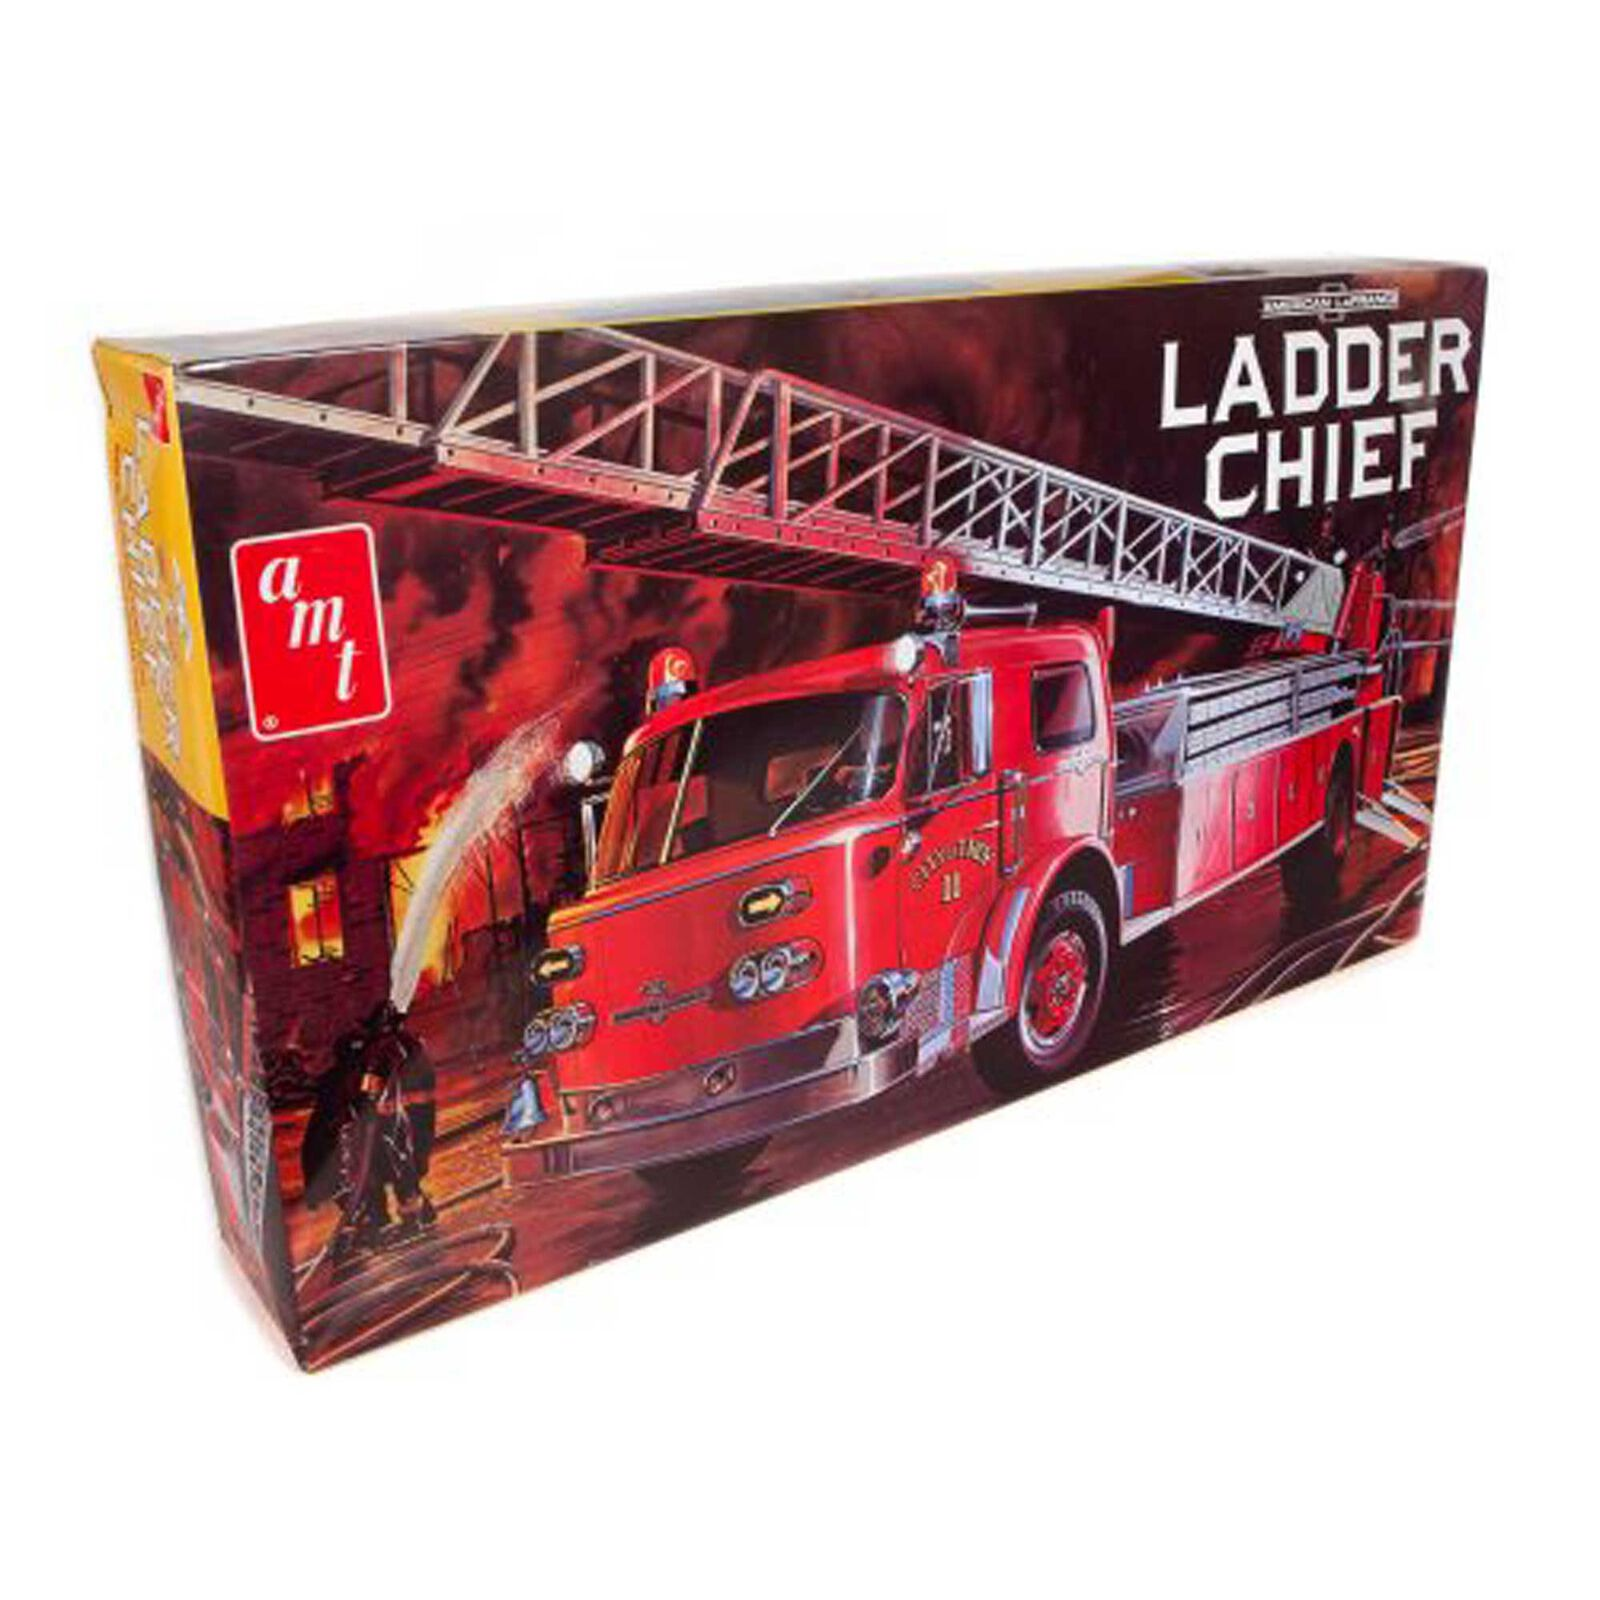 1/25 American LaFrance Ladder Chief Fire Truck